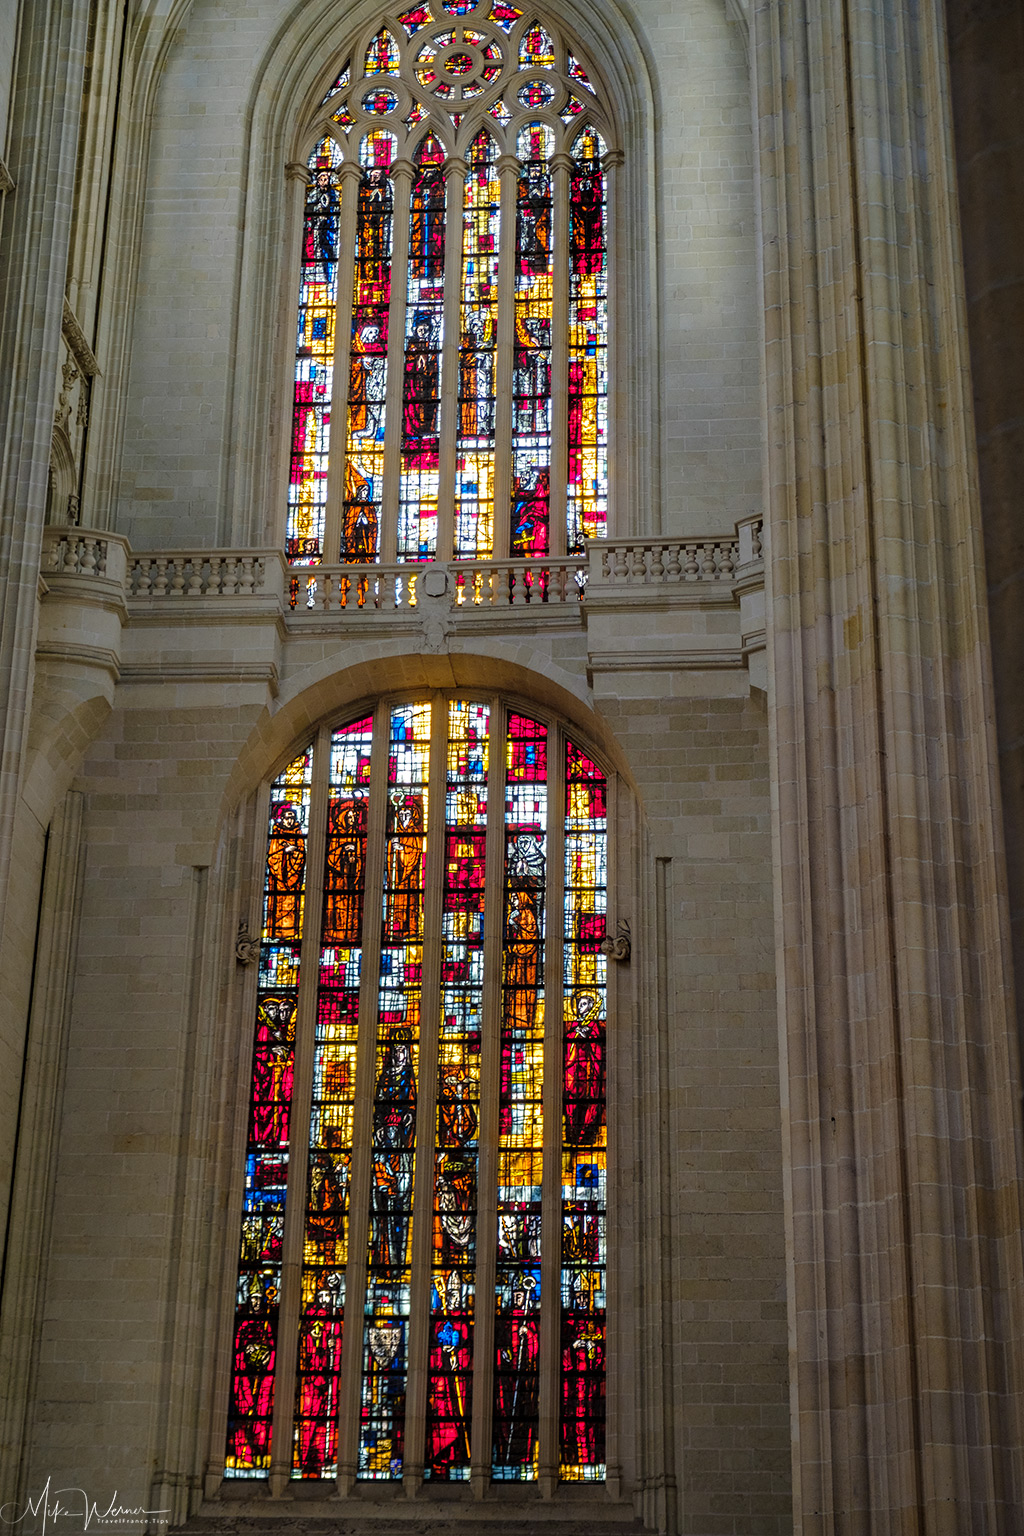 Stained glass window in the Nantes cathedral